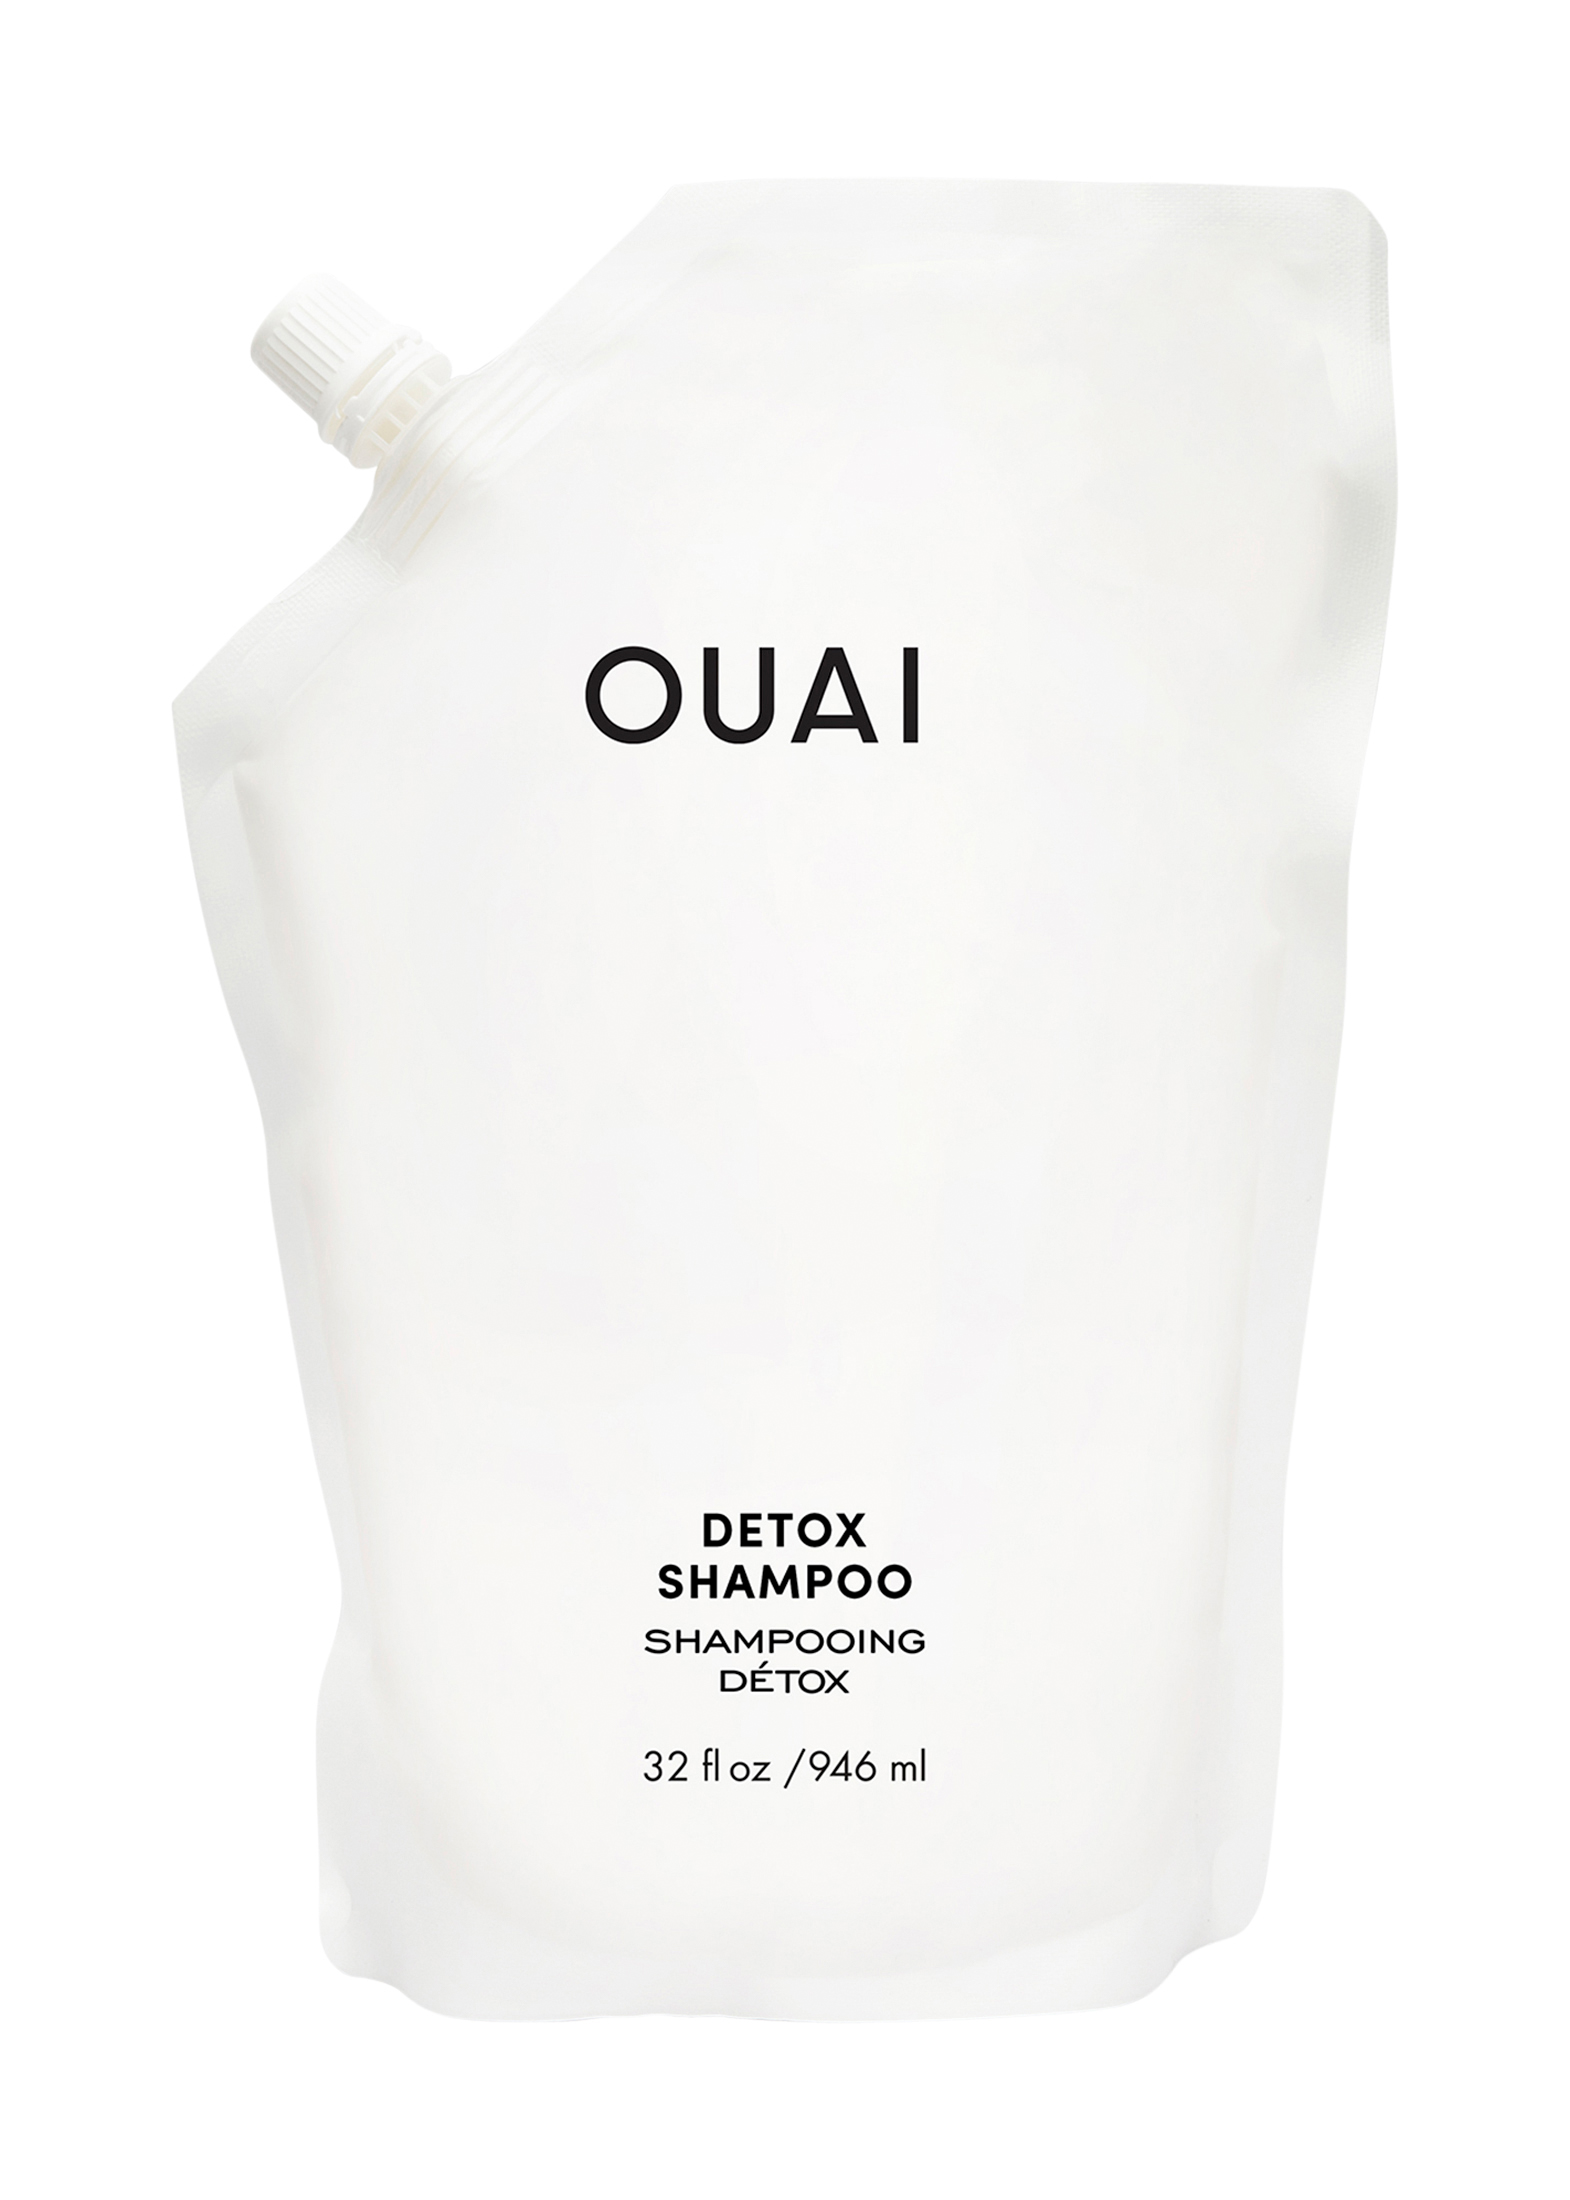 DETOX SHAMPOO - REFILL POUCH image number 0